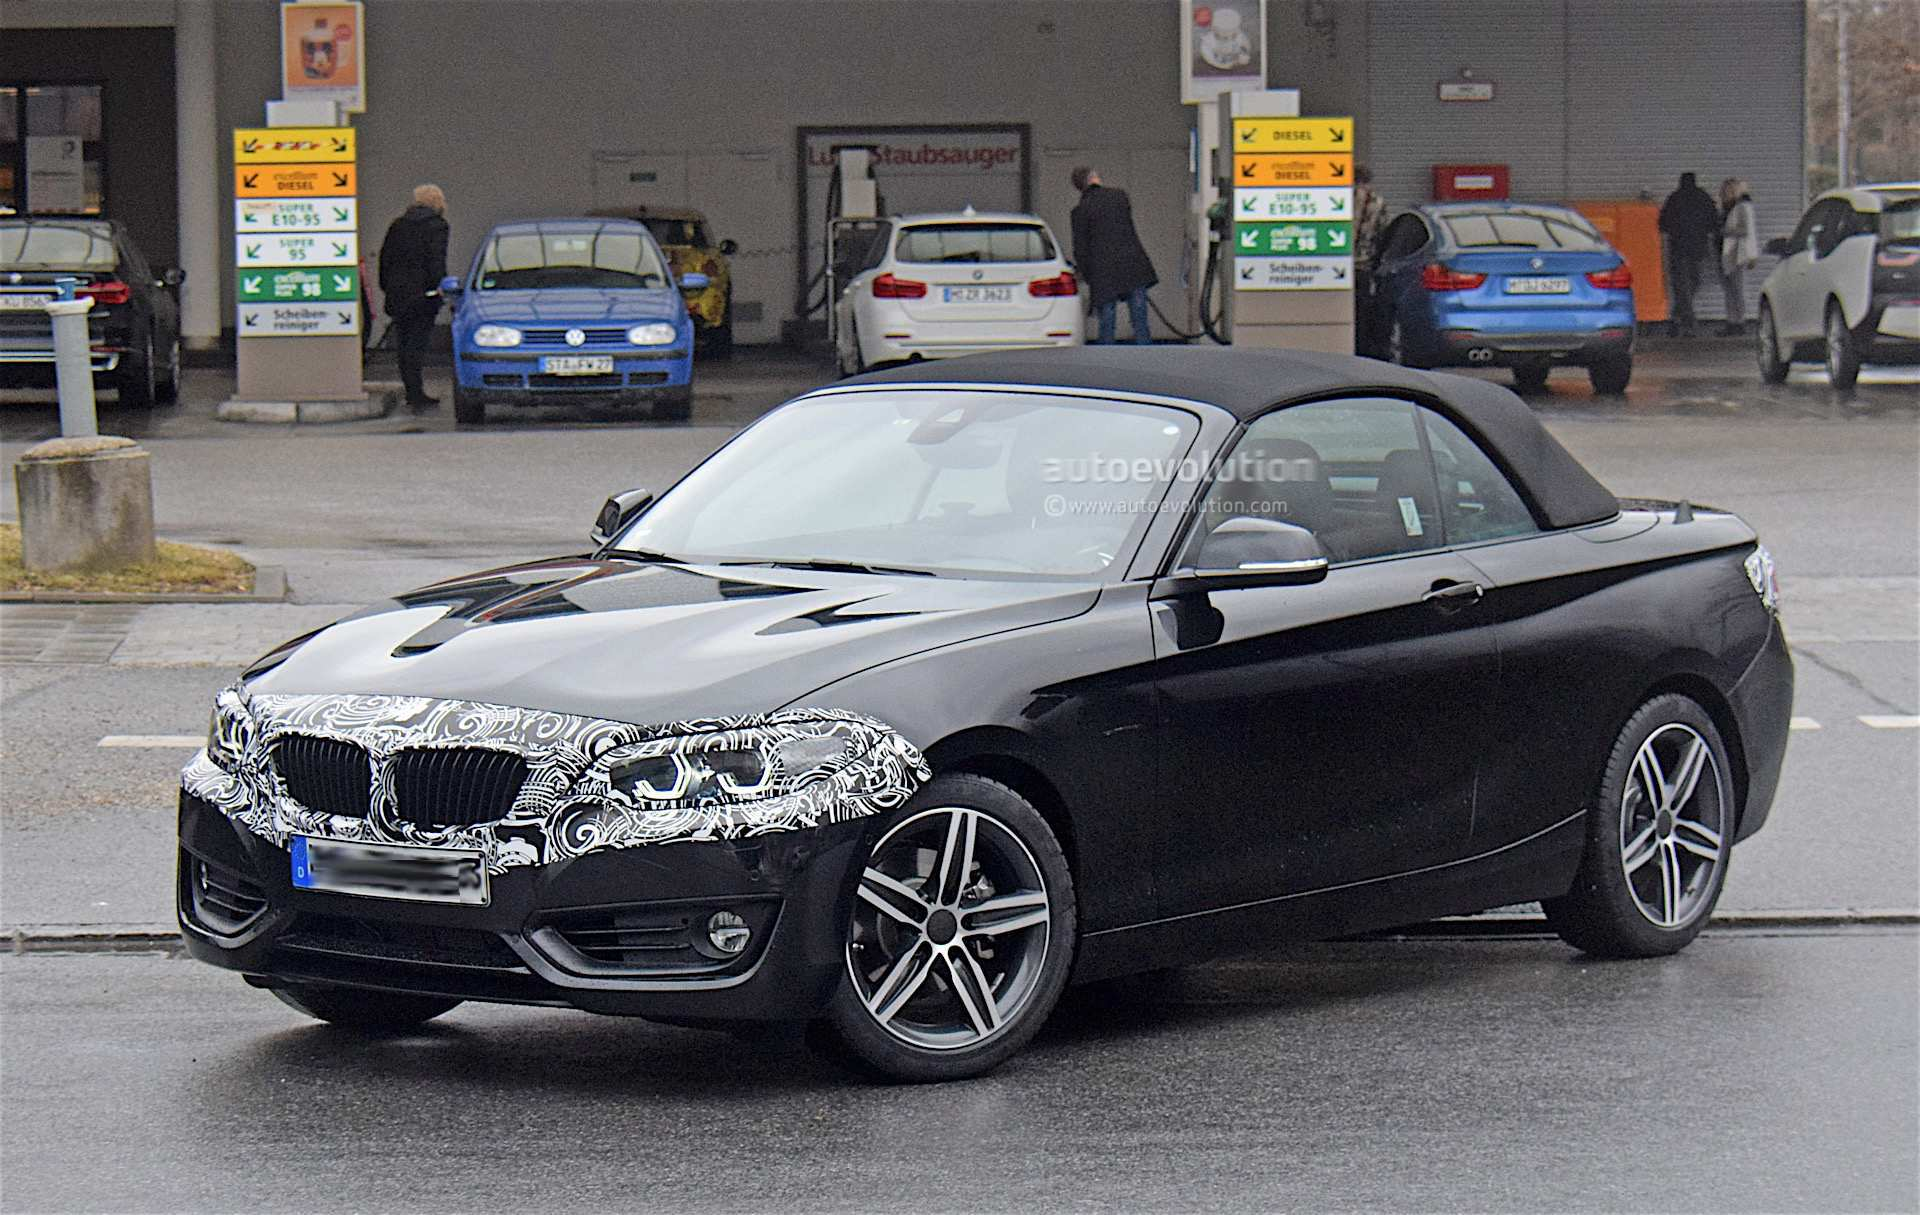 73 New 2019 Bmw 2 Series Coupe Engine for 2019 Bmw 2 Series Coupe